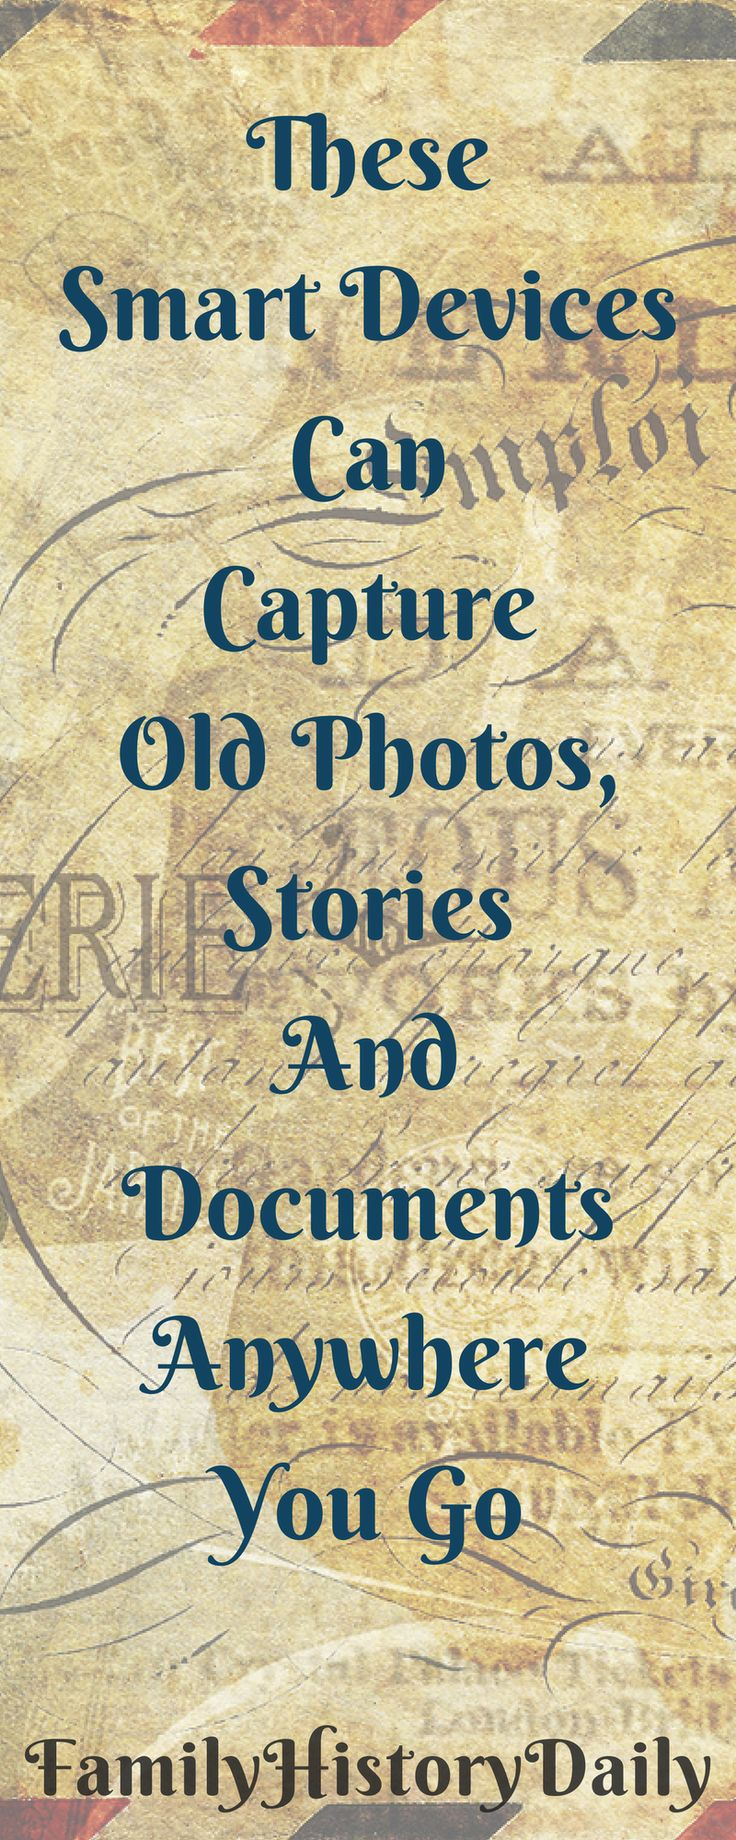 Organize Your Genealogy Research: These smart, portable devices can help you record old photos, stories, and documents for family history on the go.